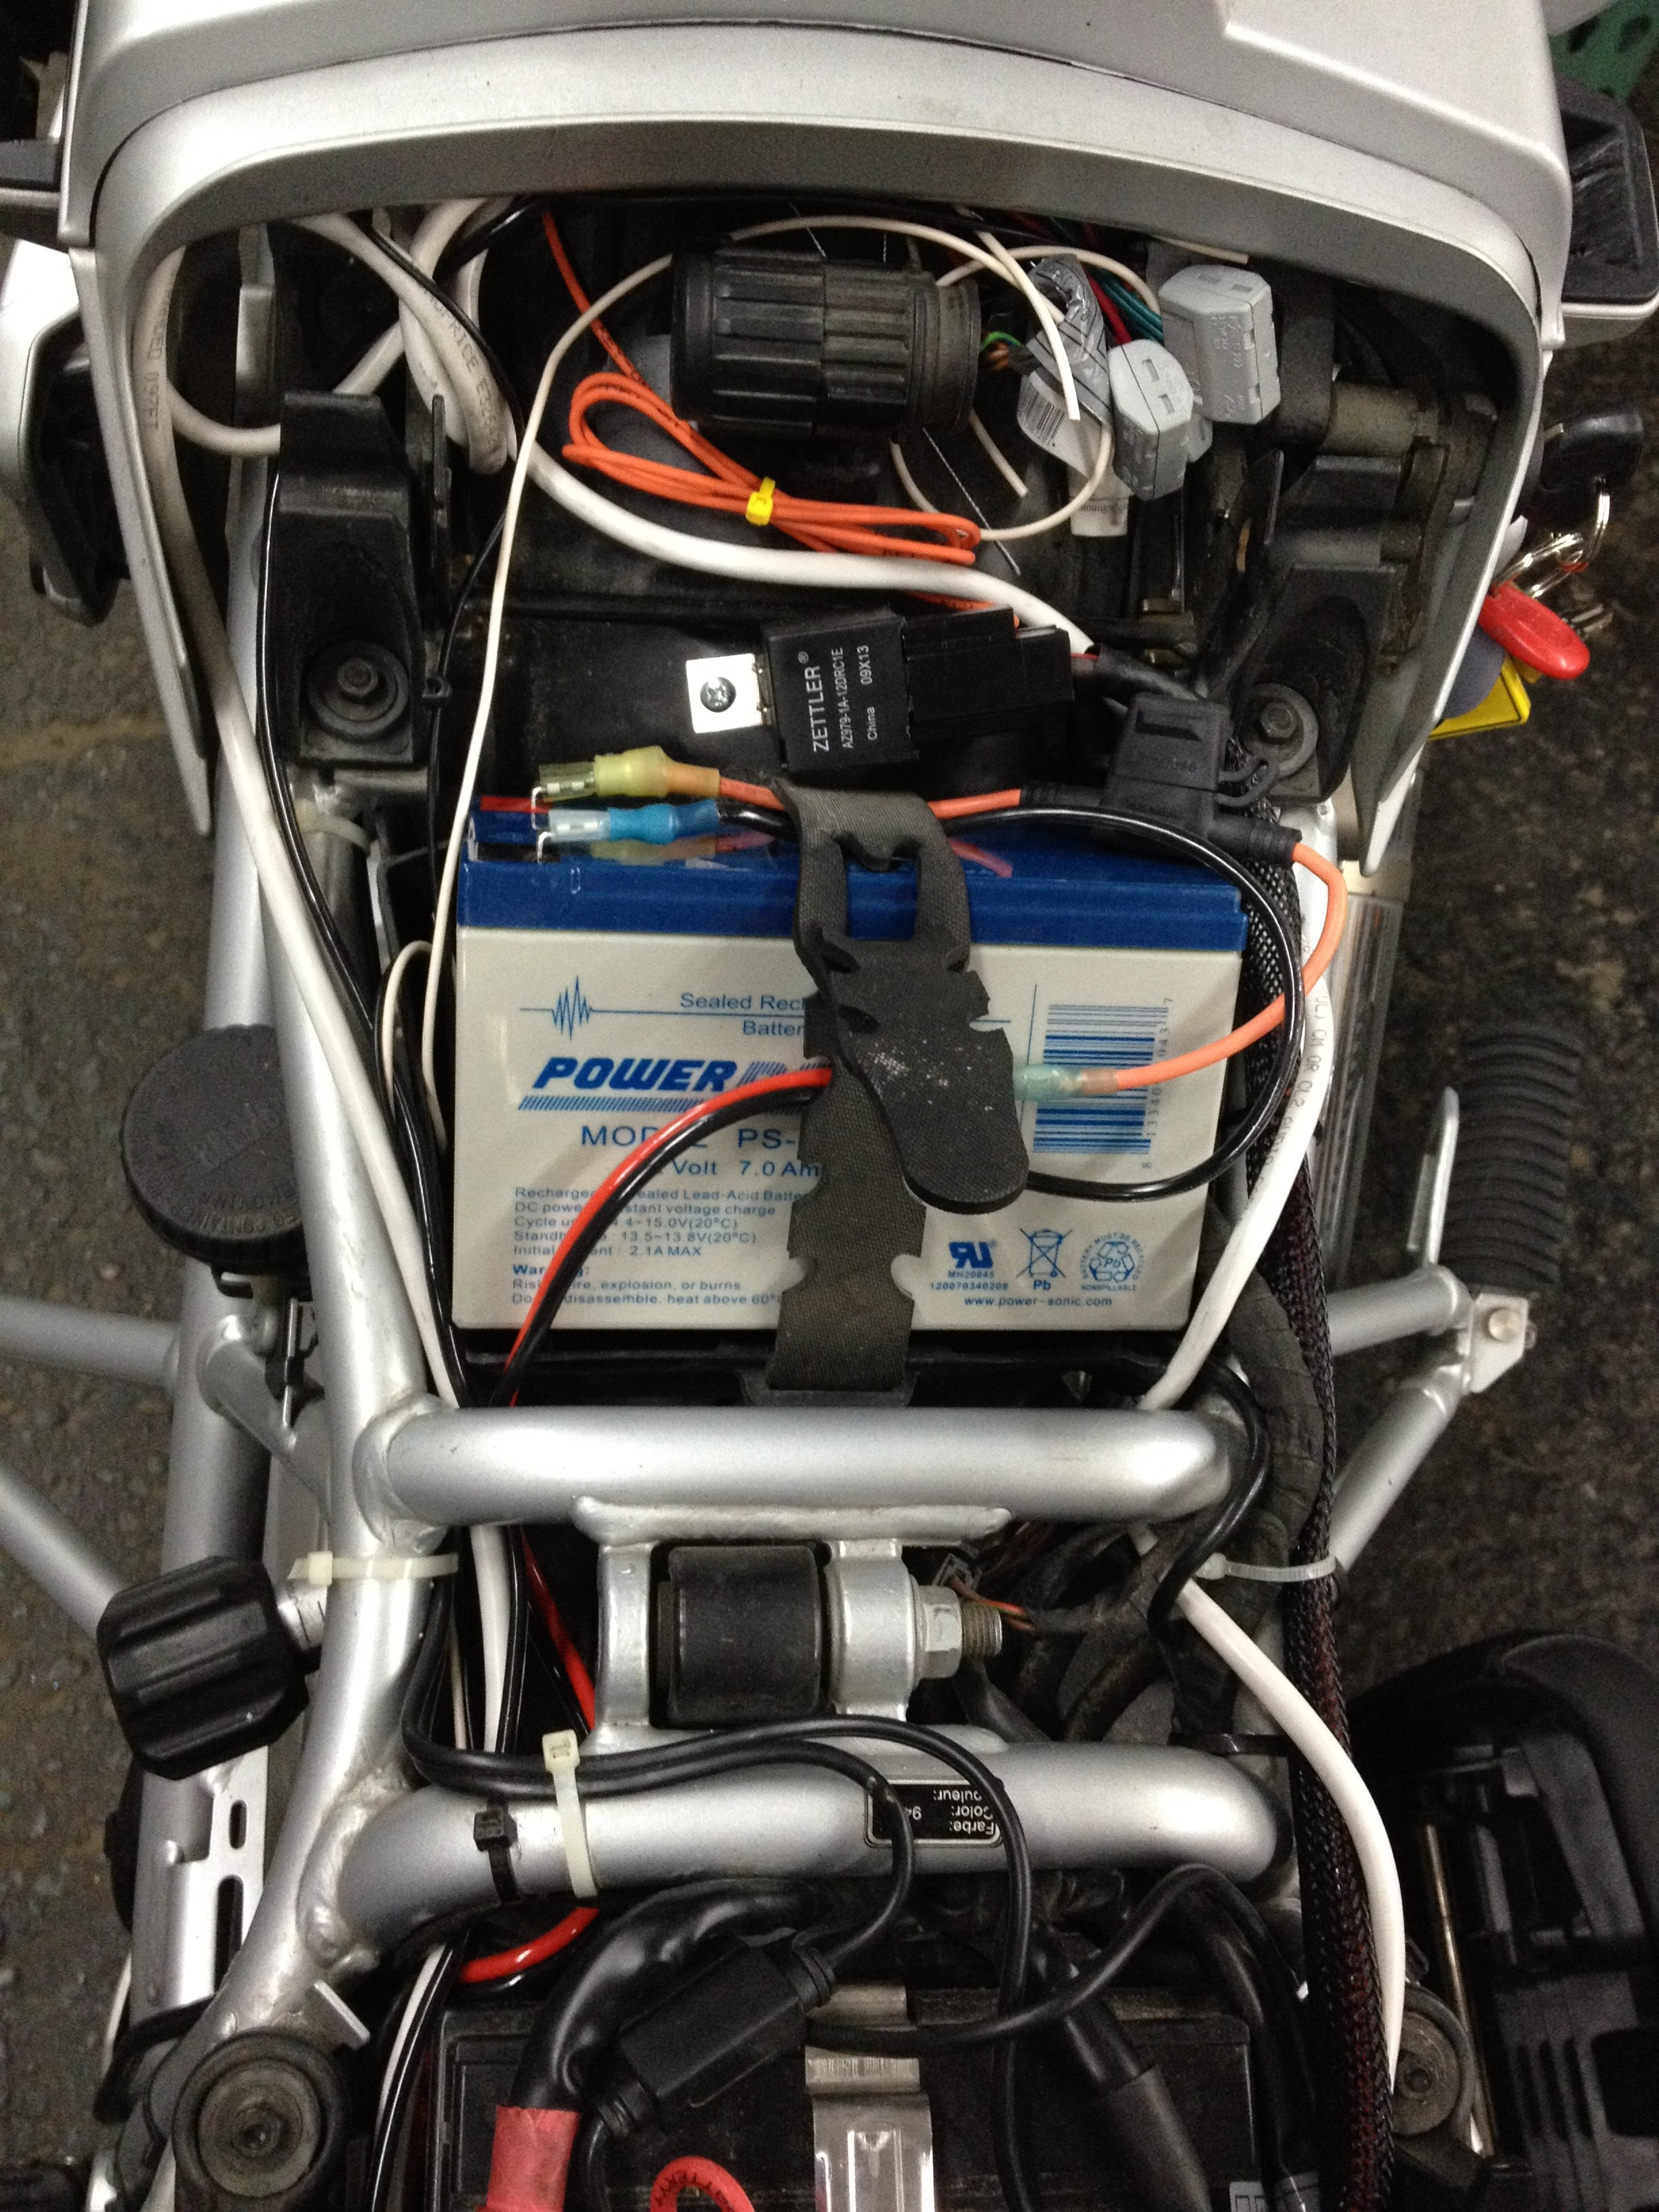 1200GS Centec Fuse Panel. 1200GS Auxiliary Battery